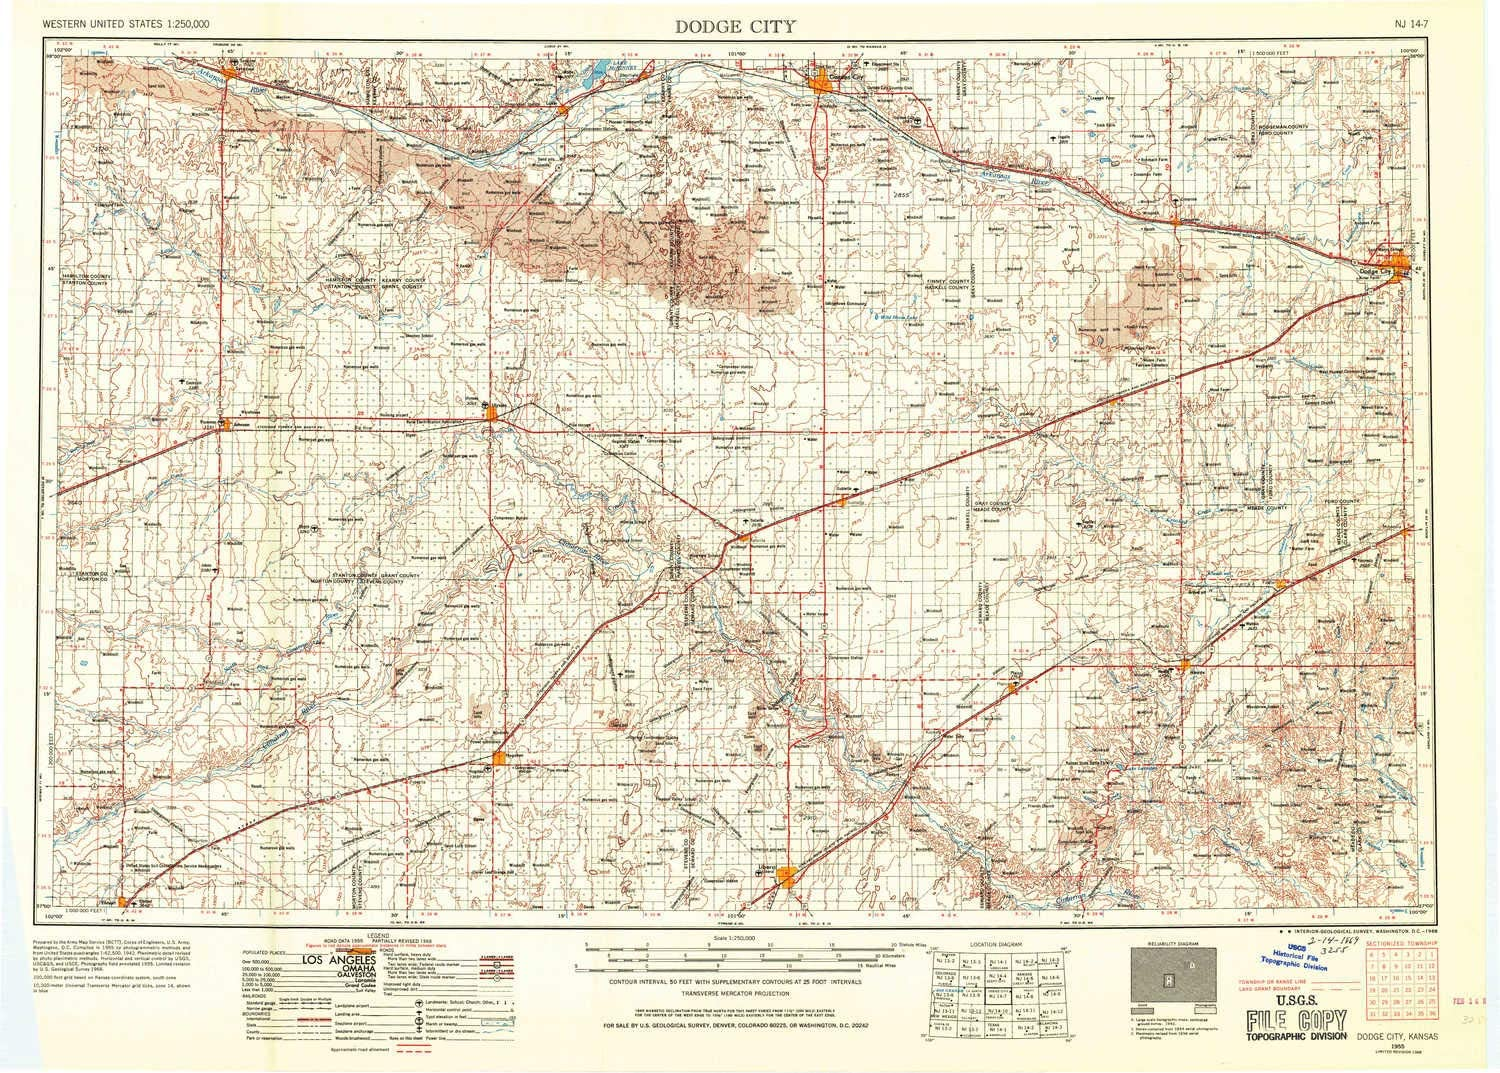 Amazon.com : YellowMaps Dodge City KS topo map, 1:250000 ... on gunsmoke dodge city map, abilene ks map, historical dodge city map, american old west, old dodge city map, kansas city shopping map, kansas city ks map, great bend, cheyenne wyoming map, ford county, topeka kansas map, kansas city mo map, sod house, old towne orange historic district map, long branch saloon, junction city, garden city, dodge city war, colby ks city map, denver colorado map, kansas state map, santa fe trail remains, boot hill, oregon city oregon map, map of kansas city kansas street map, sedalia mo map, maps of united states map, liberal kansas map, cheney lake point wichita ks map, phoenix arizona map,